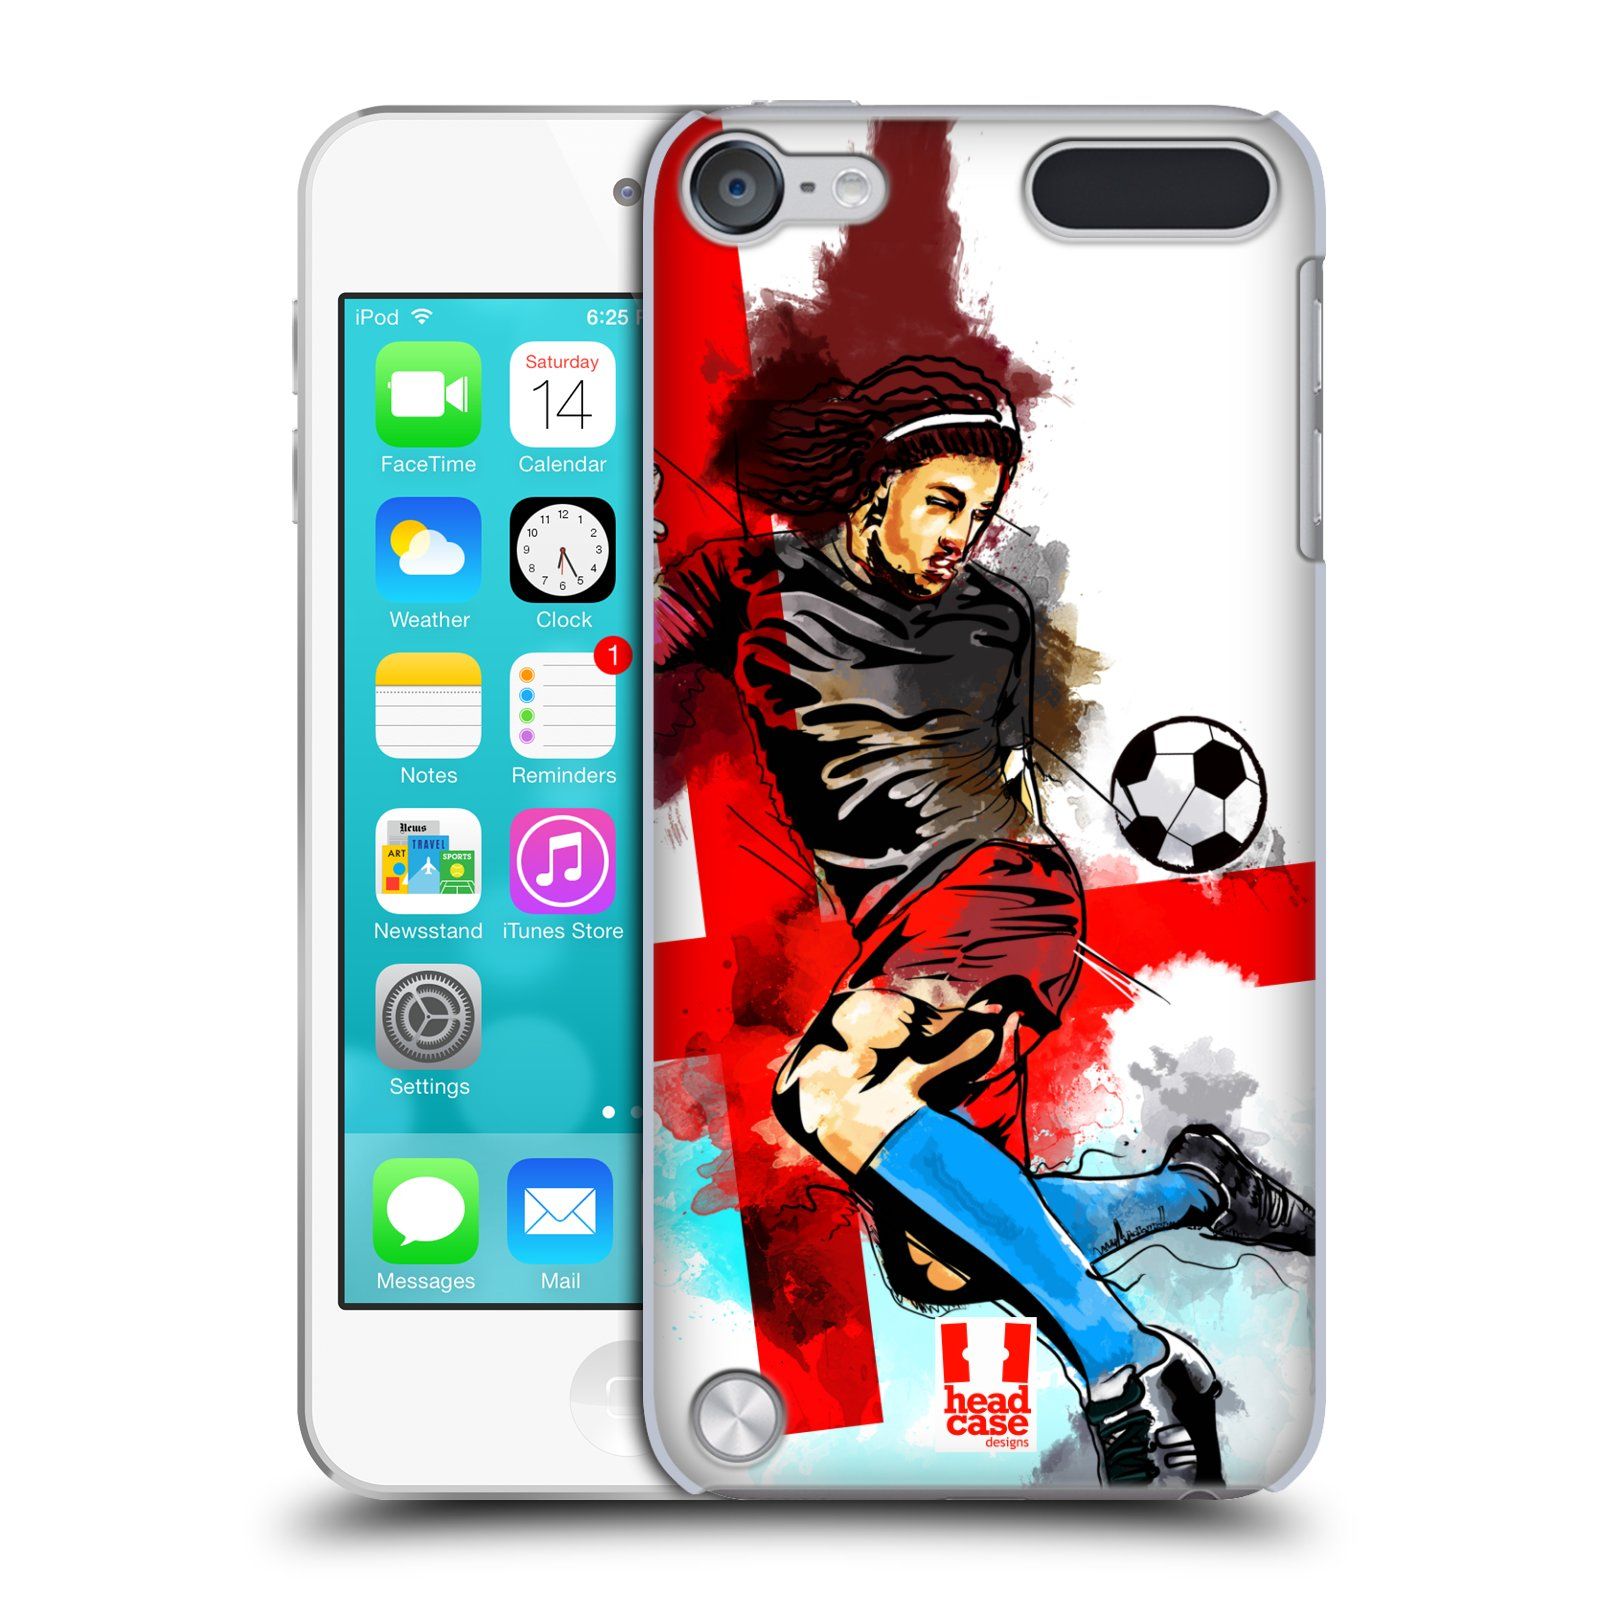 HEAD-CASE-FOOTBALL-SPLASH-SNAP-ON-CASE-FOR-APPLE-iPOD-TOUCH-5G-5TH-GEN